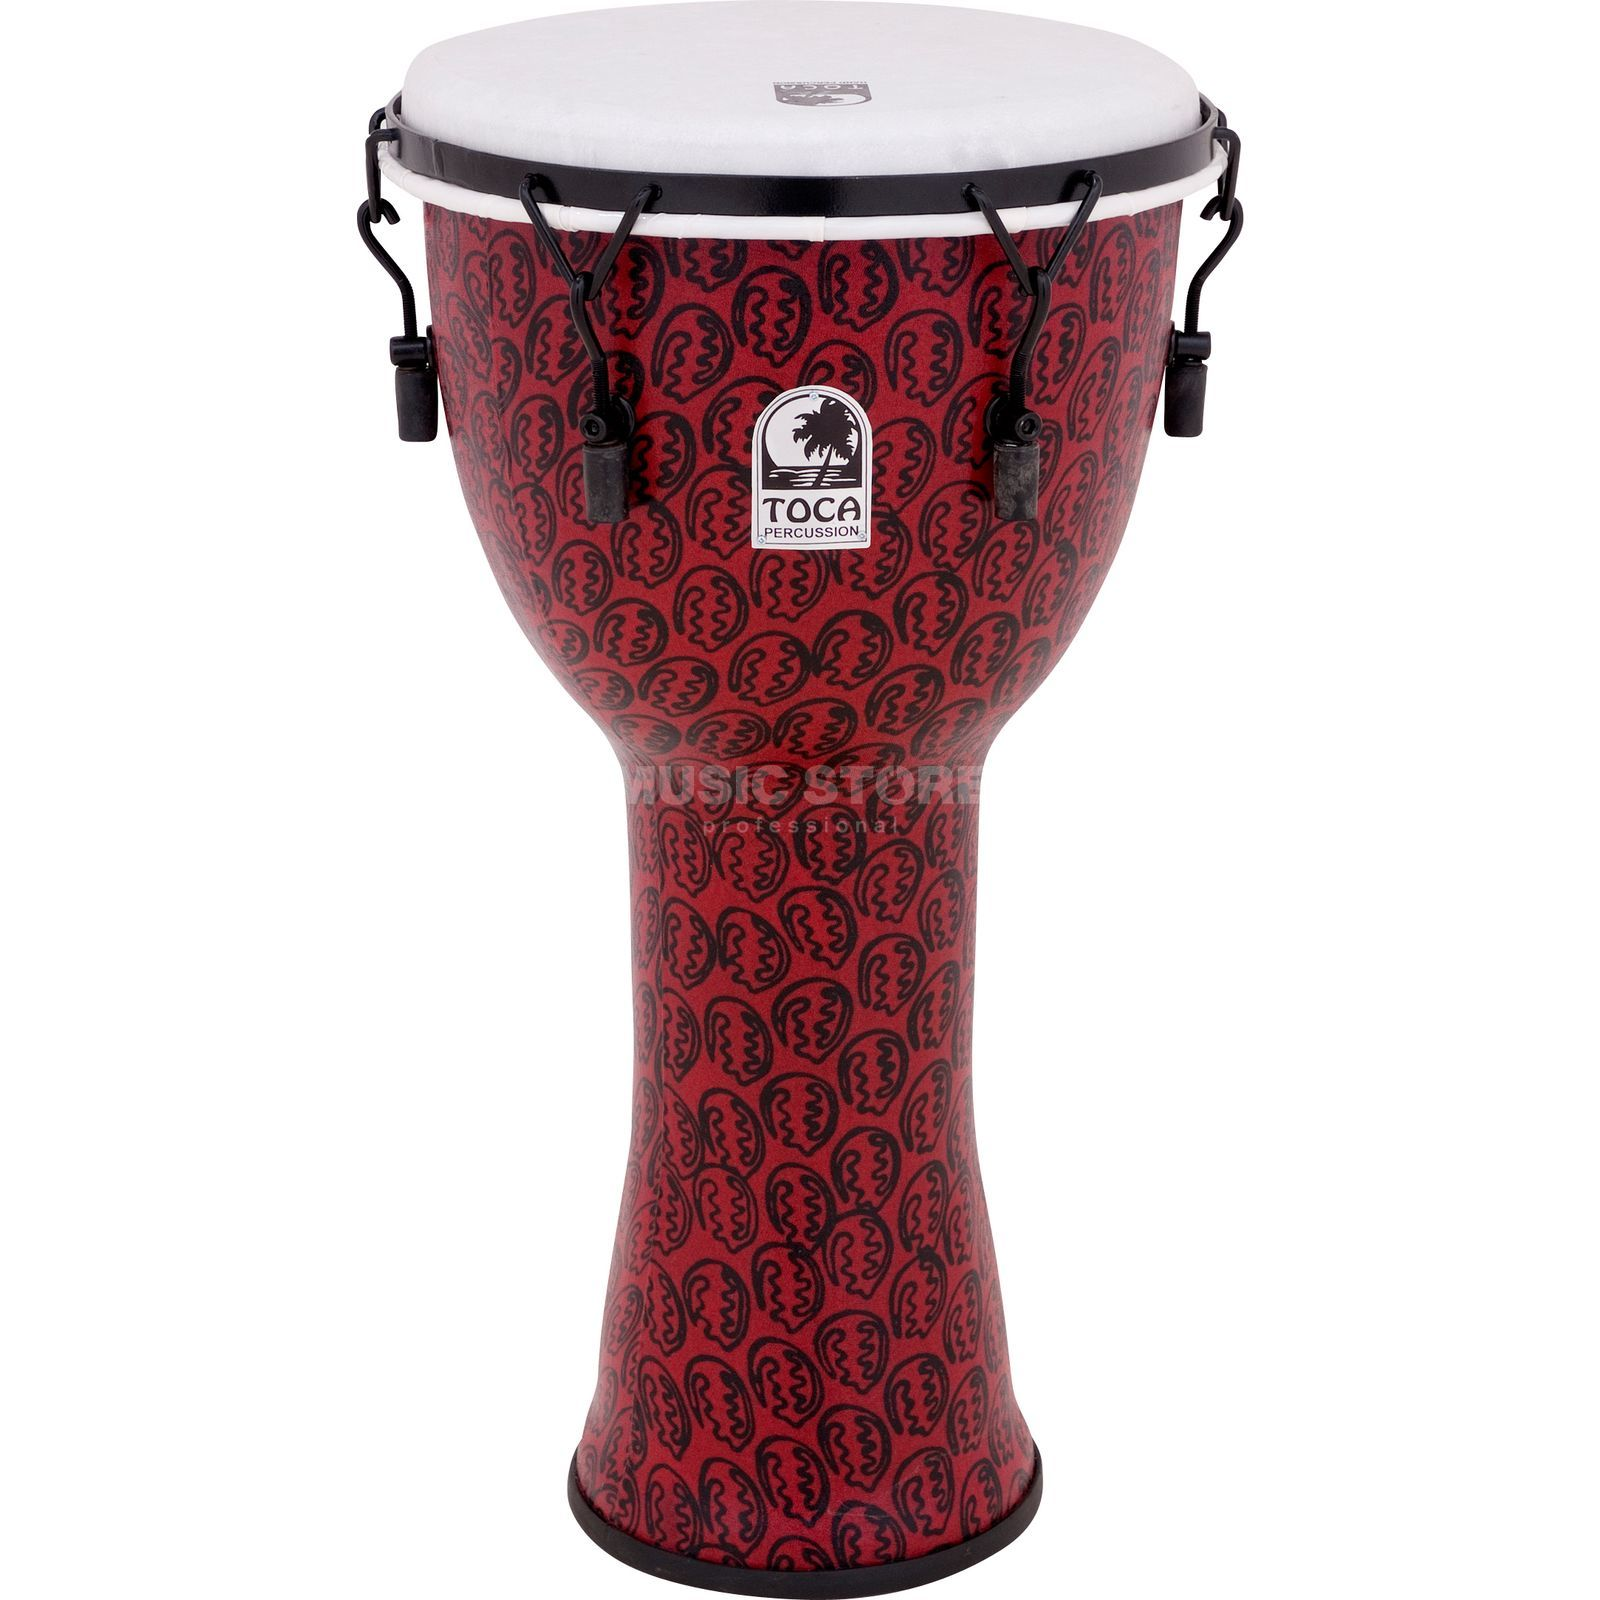 "Toca Percussion Freestyle Djembe TF2DM-14RM, 14"", Red Mask Produktbild"